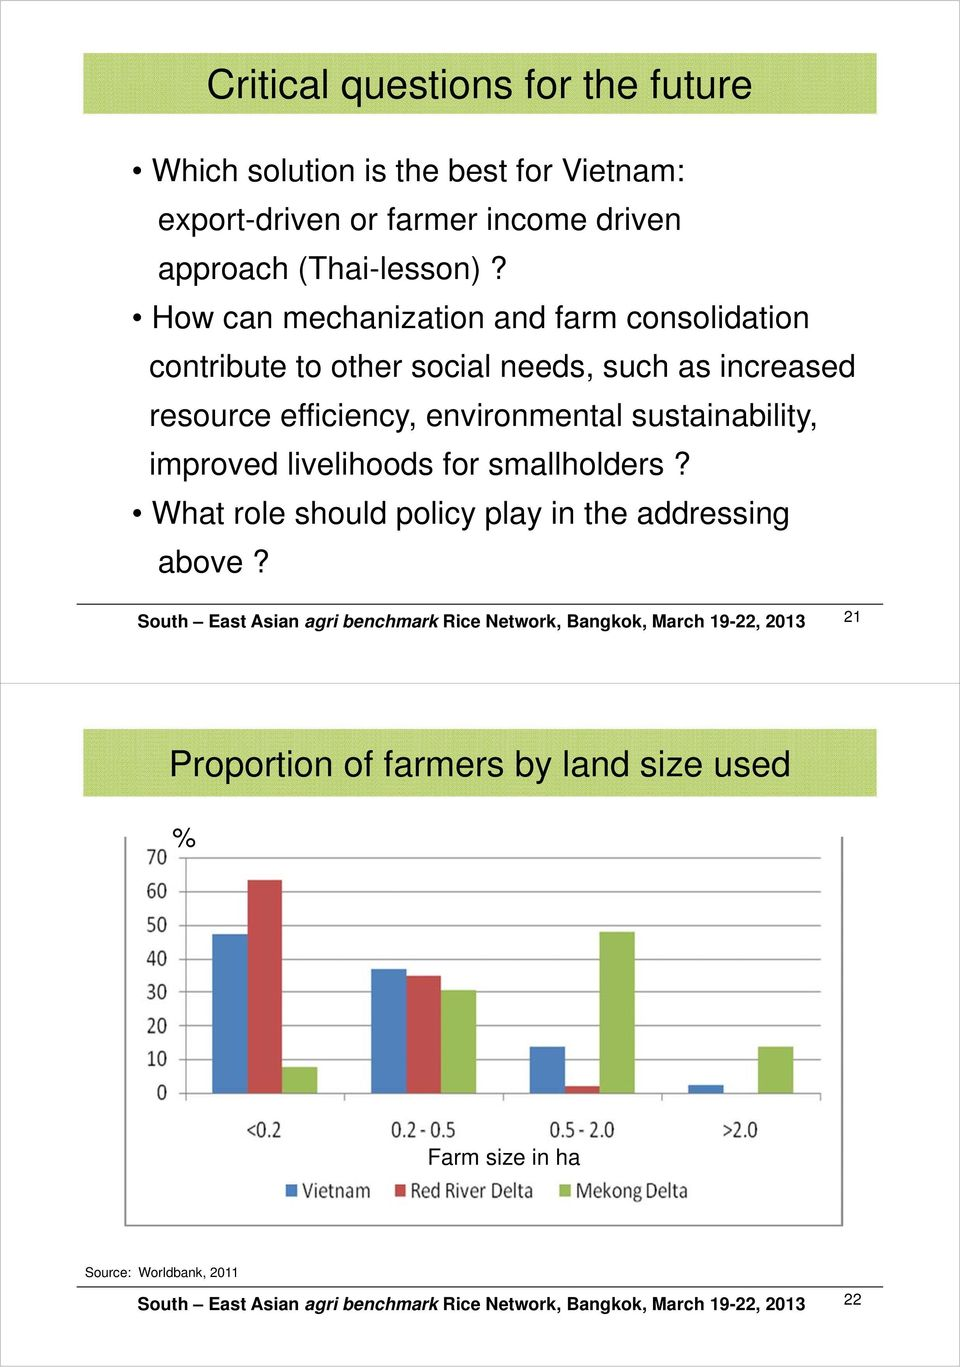 How can mechanization and farm consolidation contribute to other social needs, such as increased resource